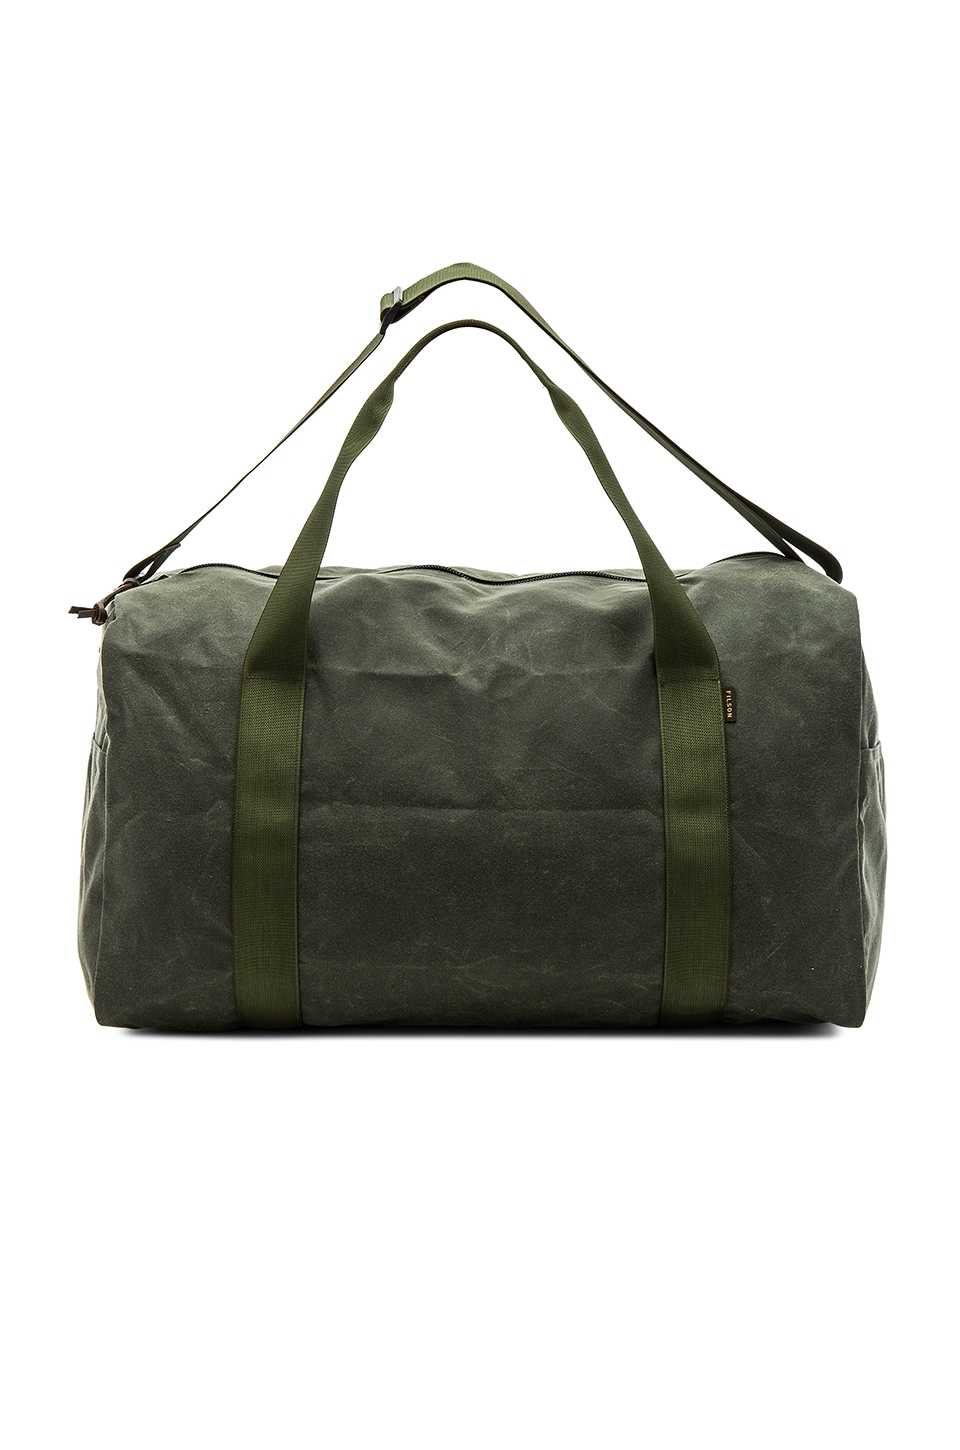 Filson Medium Field Duffle in Spruce